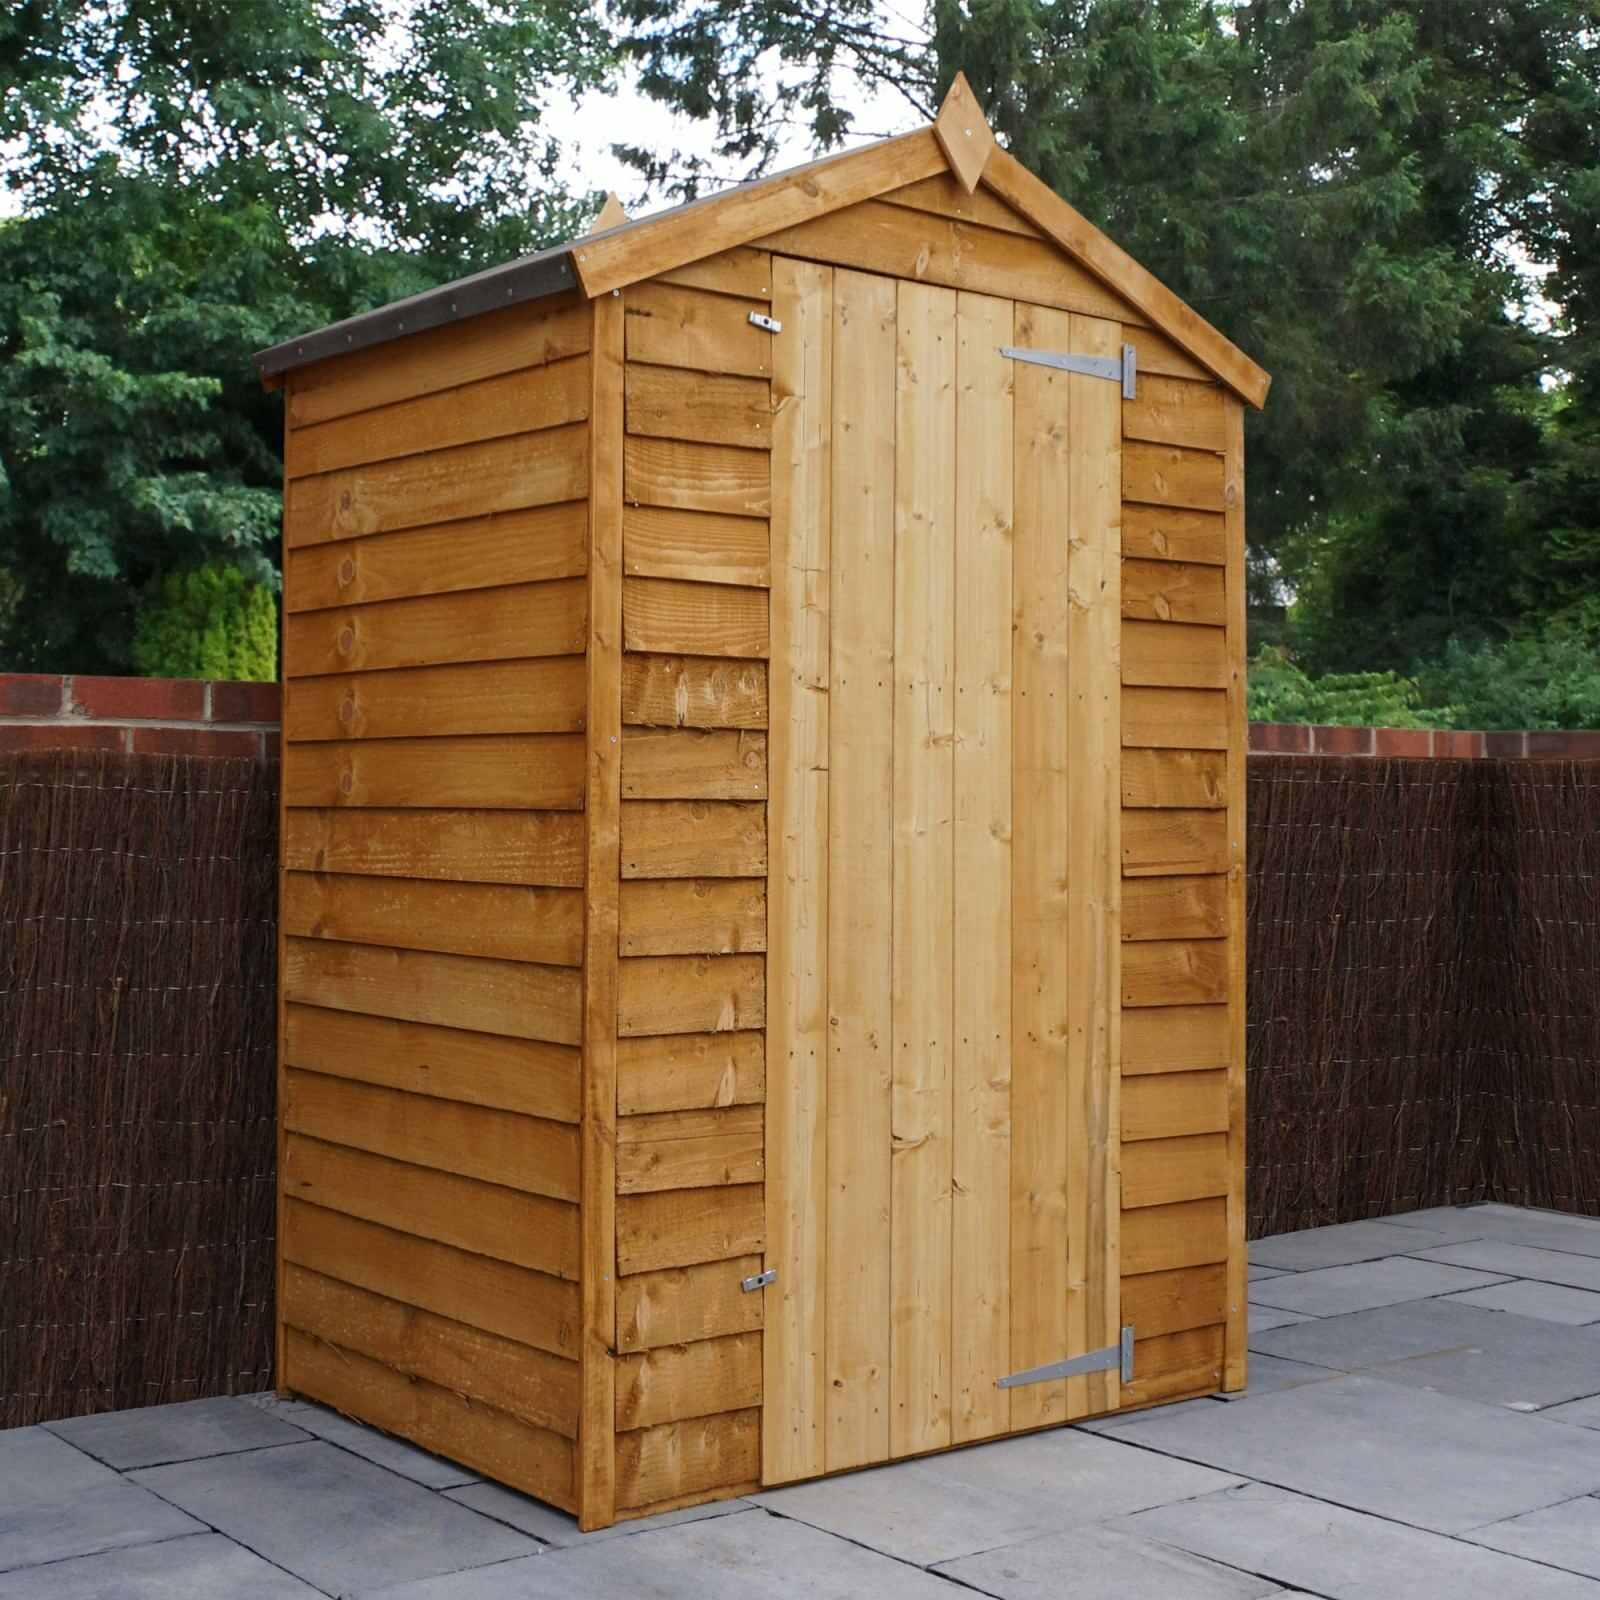 SMALL GARDEN SHED store 3 x 4 - £189.00 | PicClick UK